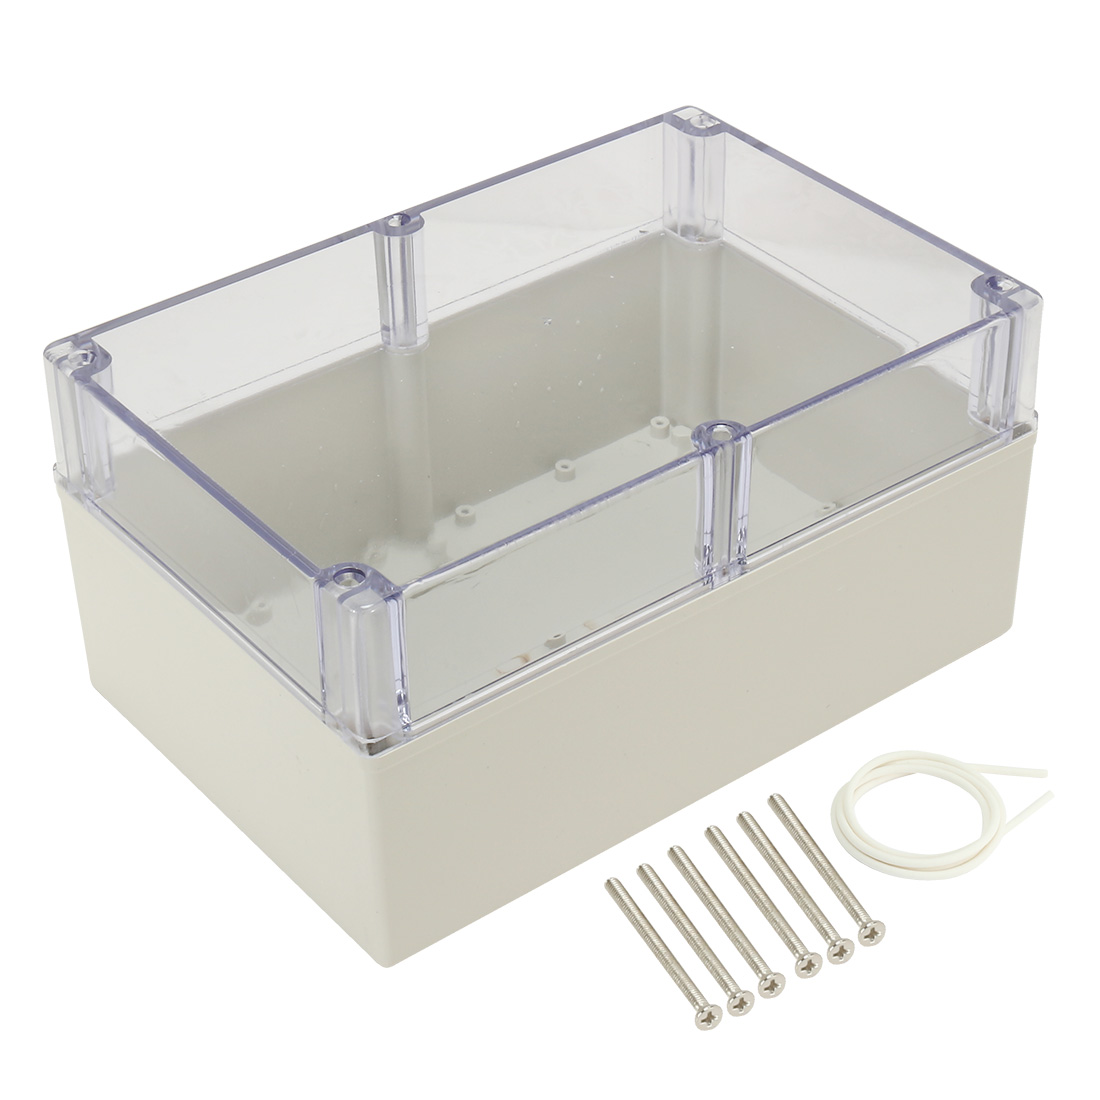 "9.4""x6.3""x4.7""(240mmx160mmx120mm) ABS Junction Box Electric Project Enclosure Clear"